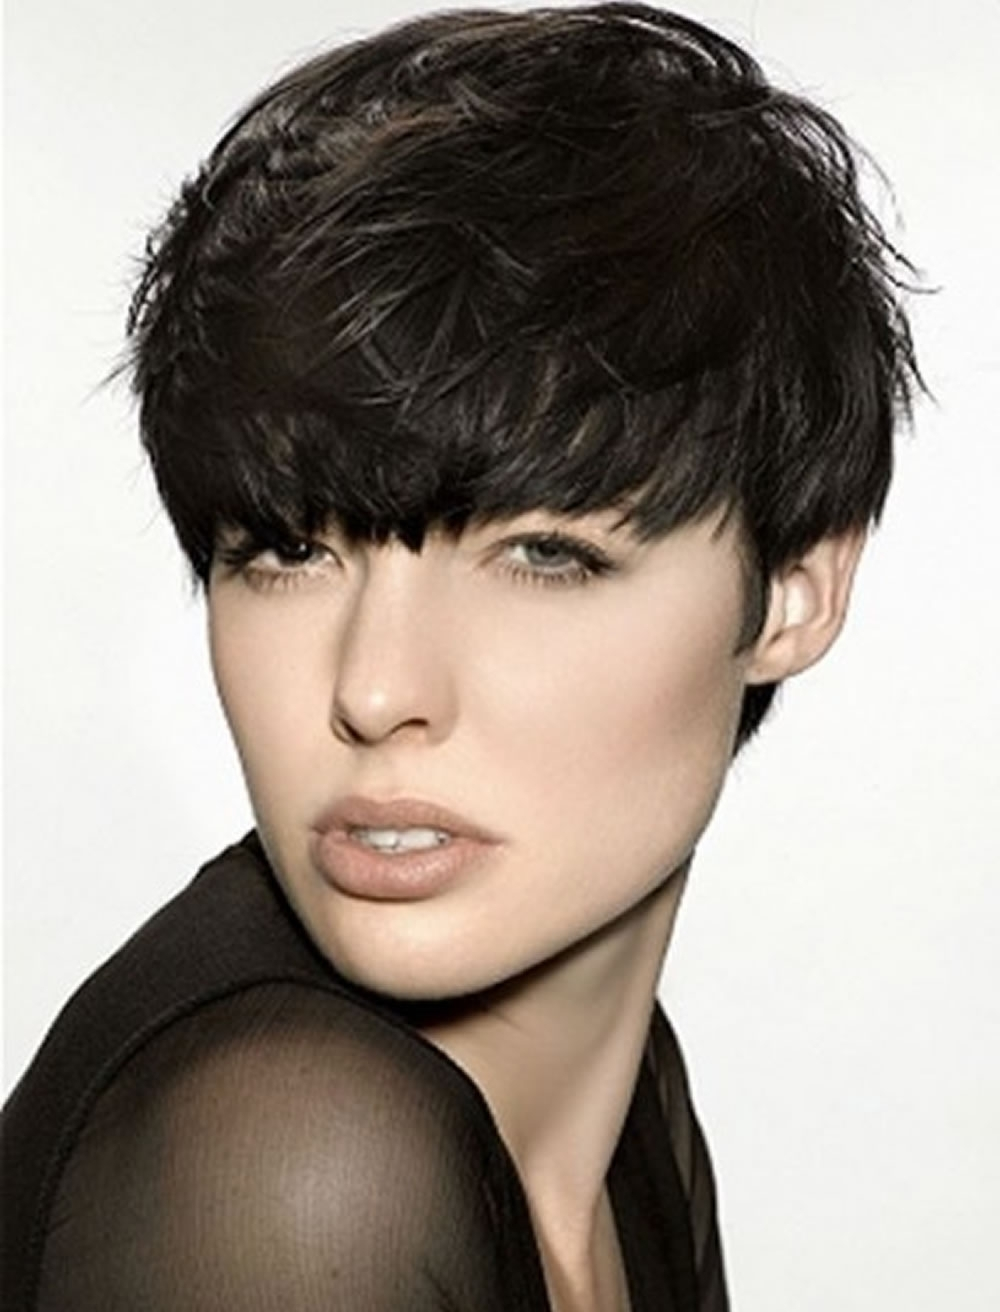 Trend Pixie Haircuts For Thick Hair 2018 2019 : 28 Terrific Pixie For Most Up To Date Thick Hair Pixie Hairstyles (View 12 of 15)